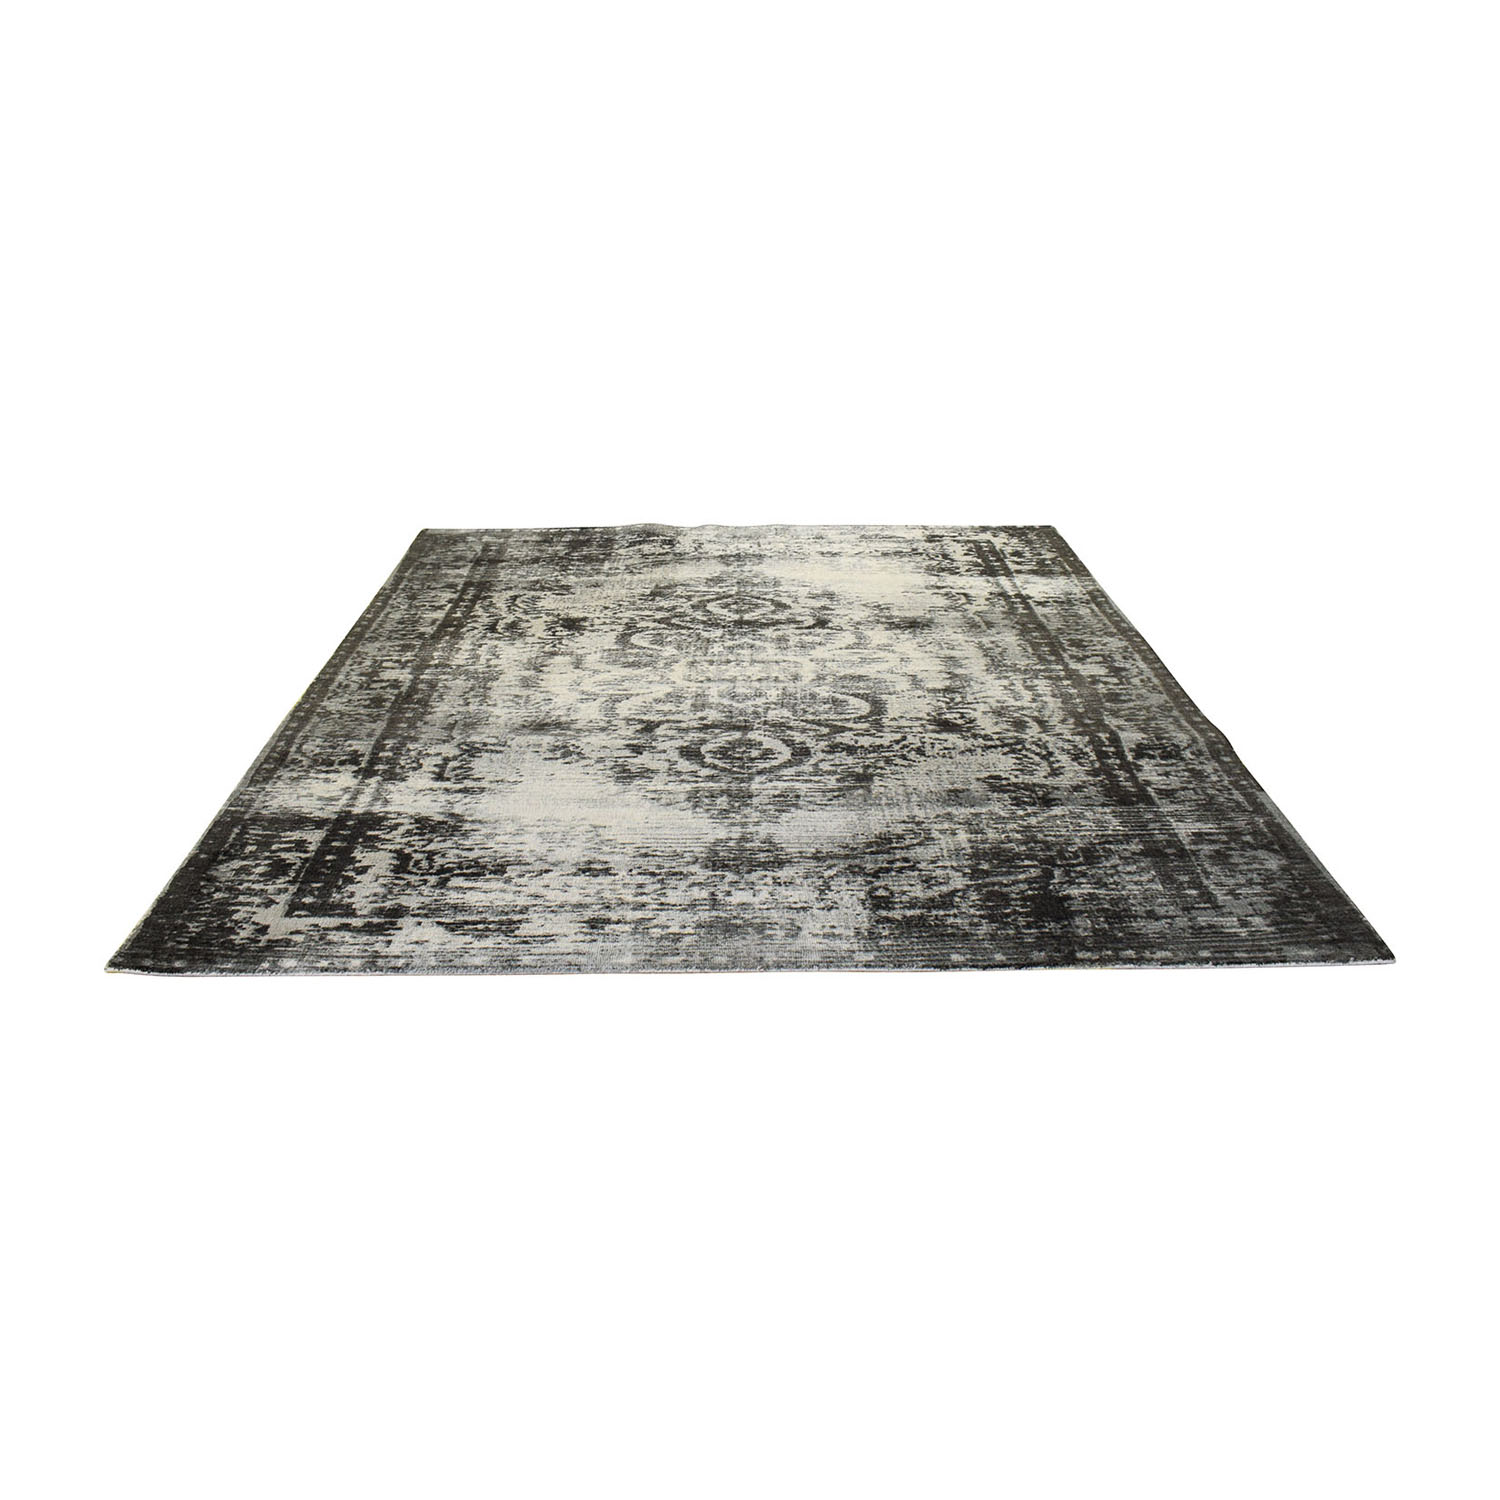 buy West Elm Distressed Arabesque Wool Rug West Elm